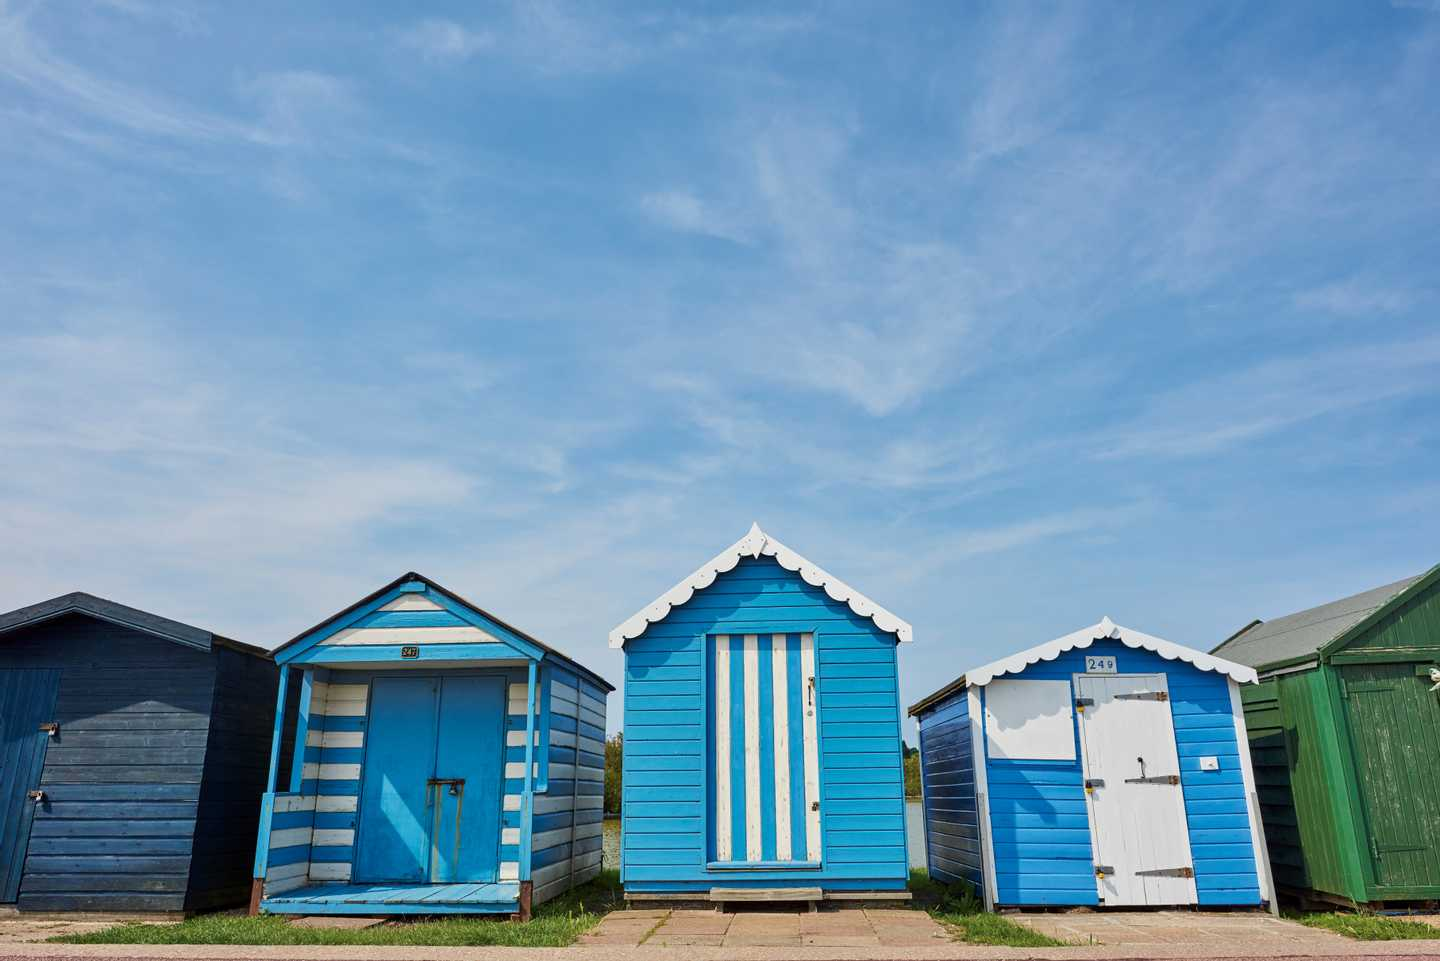 A row of blue beach huts at Brightlingsea